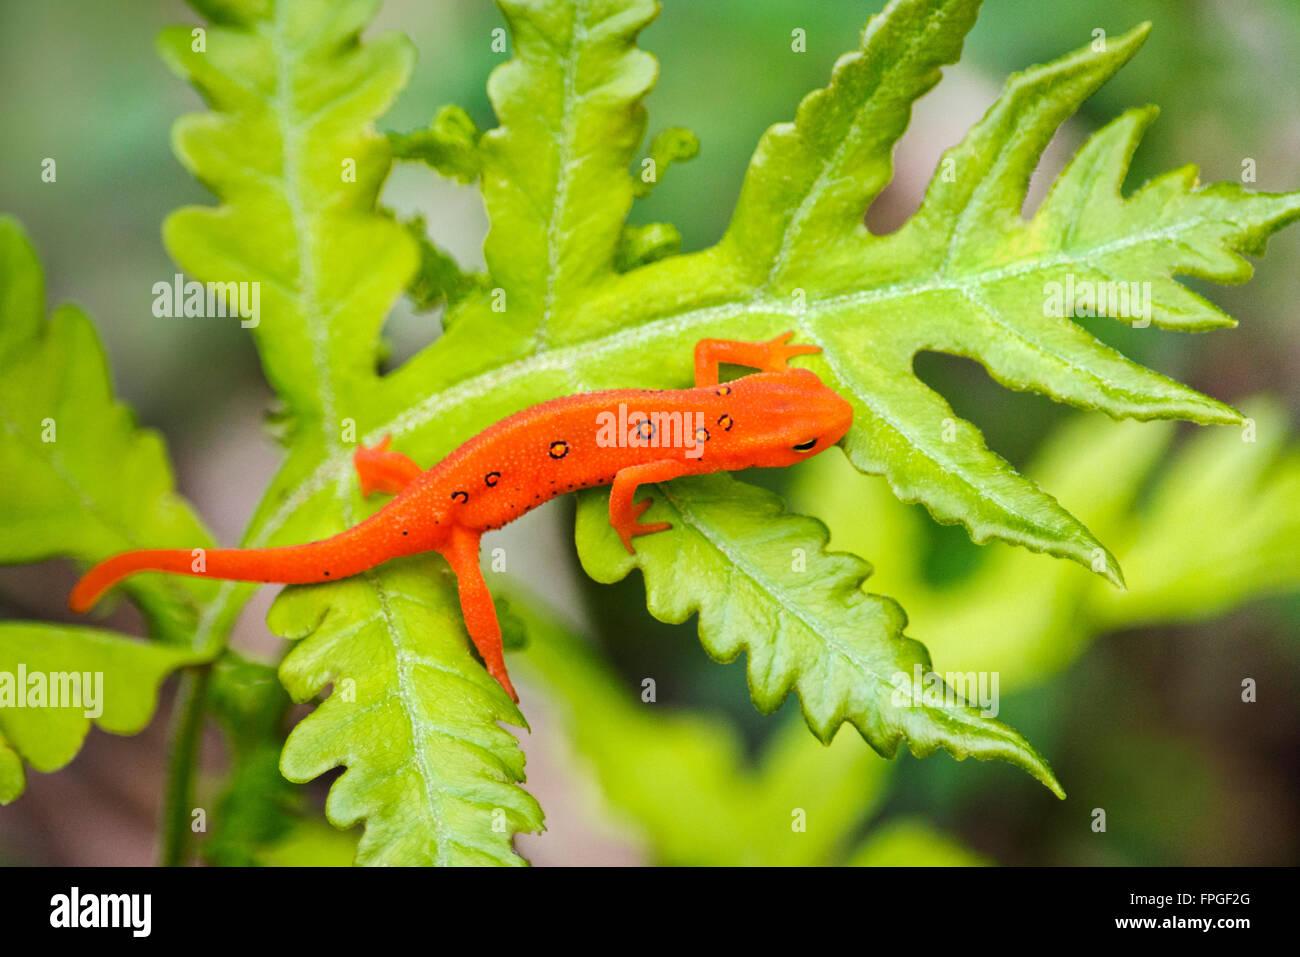 Eastern newt red eft stage close up crawling on green fern leaf Stock Photo